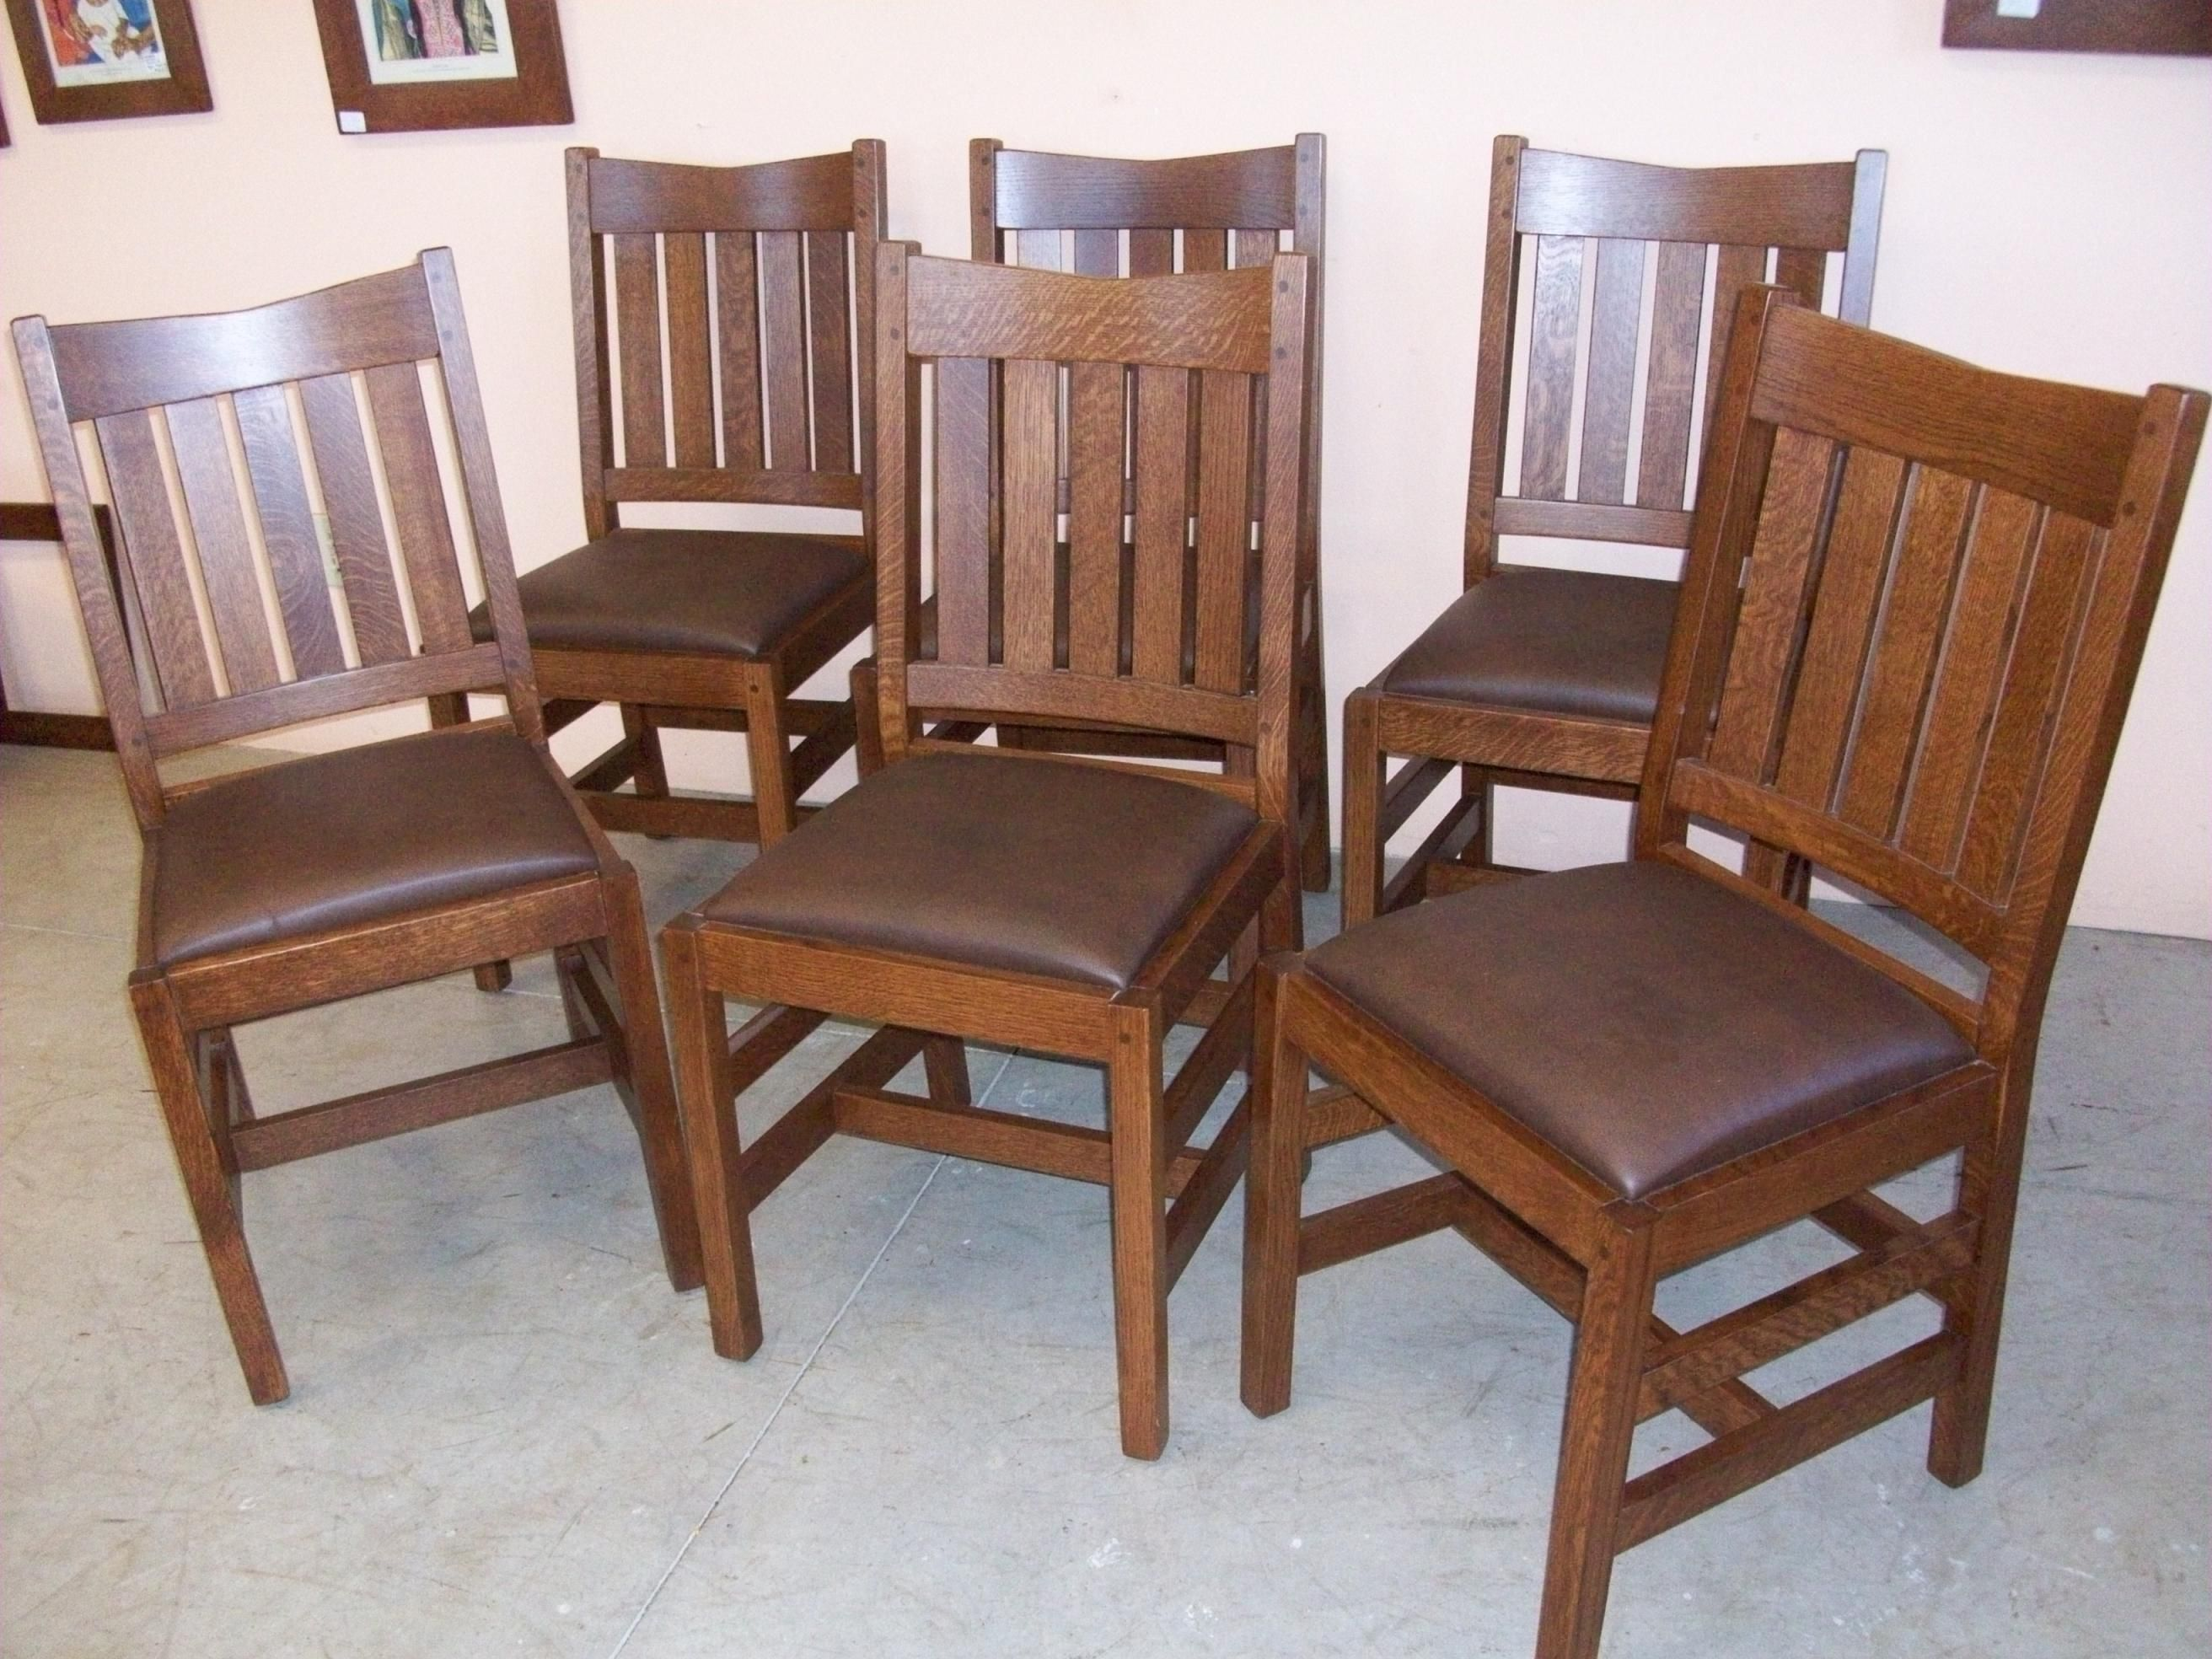 Dining Chairs Set Of 6 Set Of 6 New Mission Oak Dining Chairs Home Living